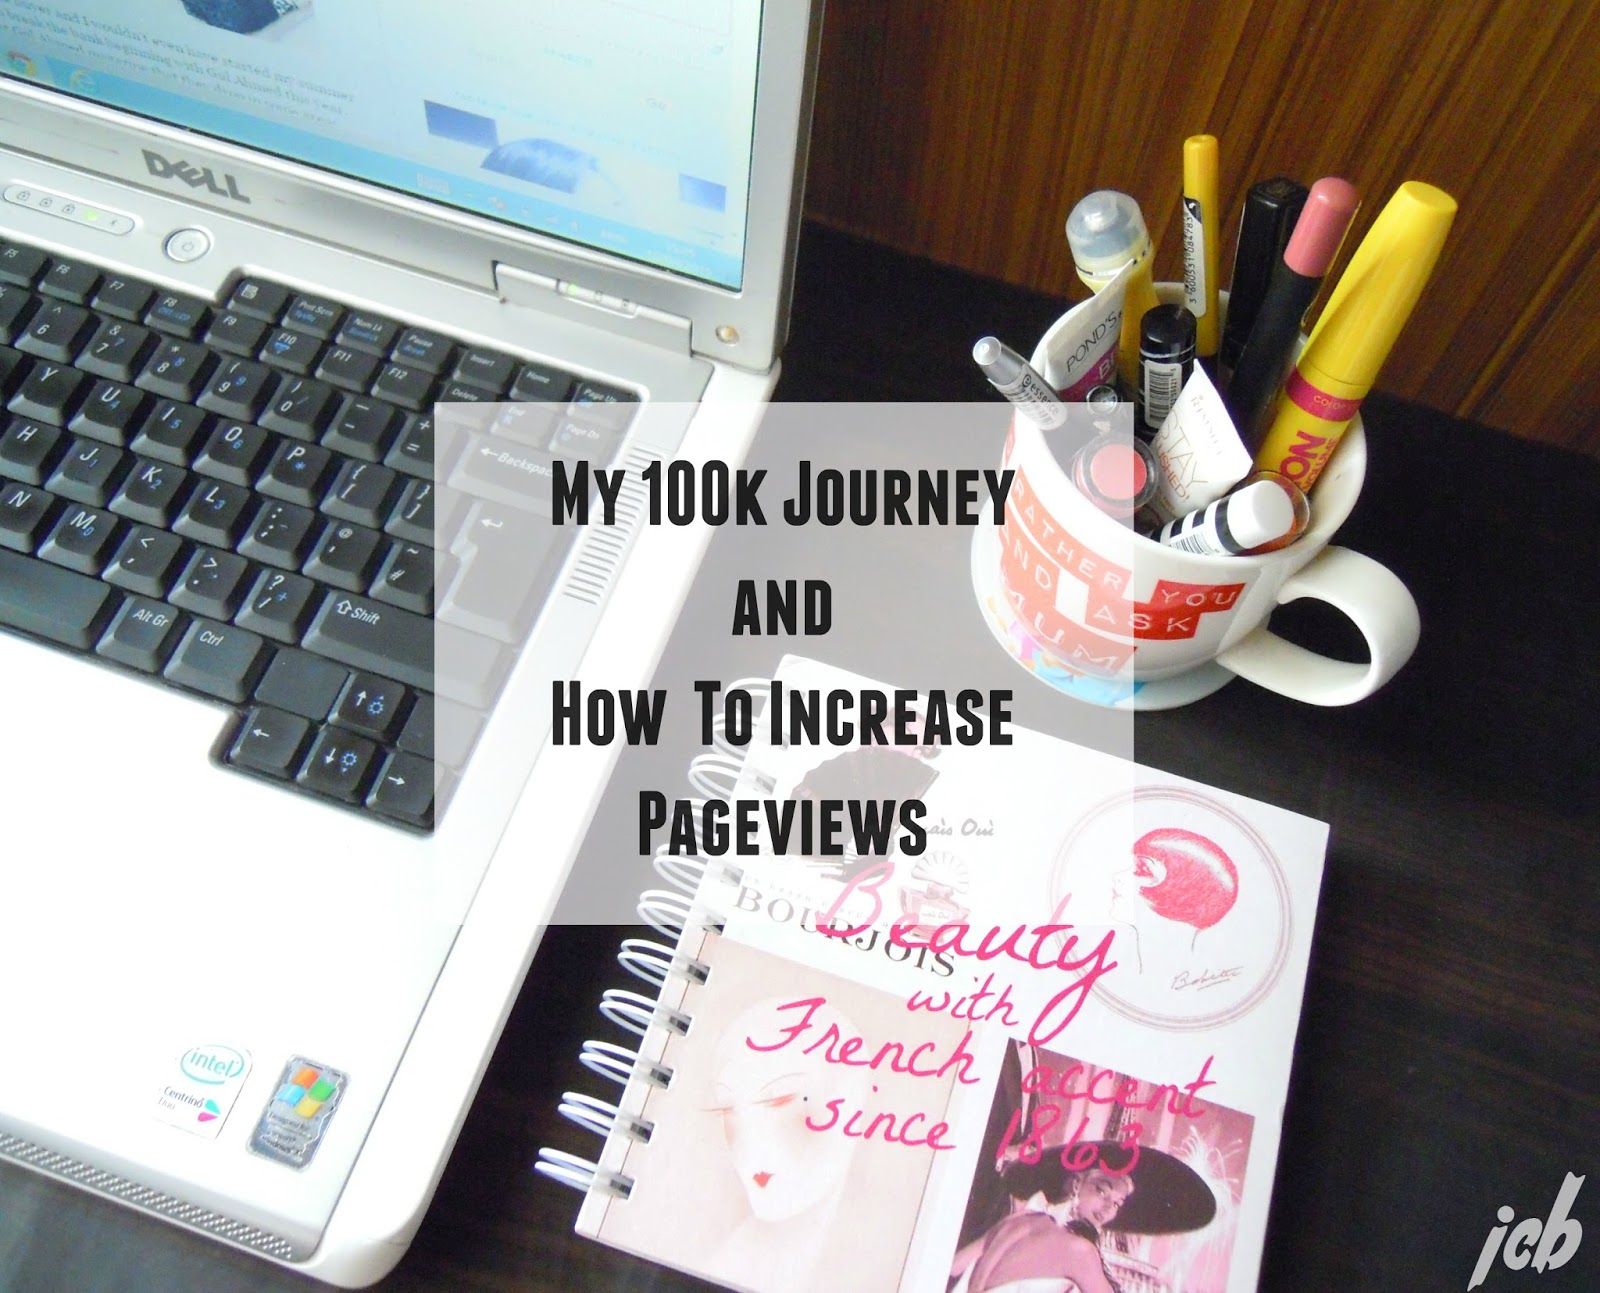 My 100k Journey and How to Increase Pageviews